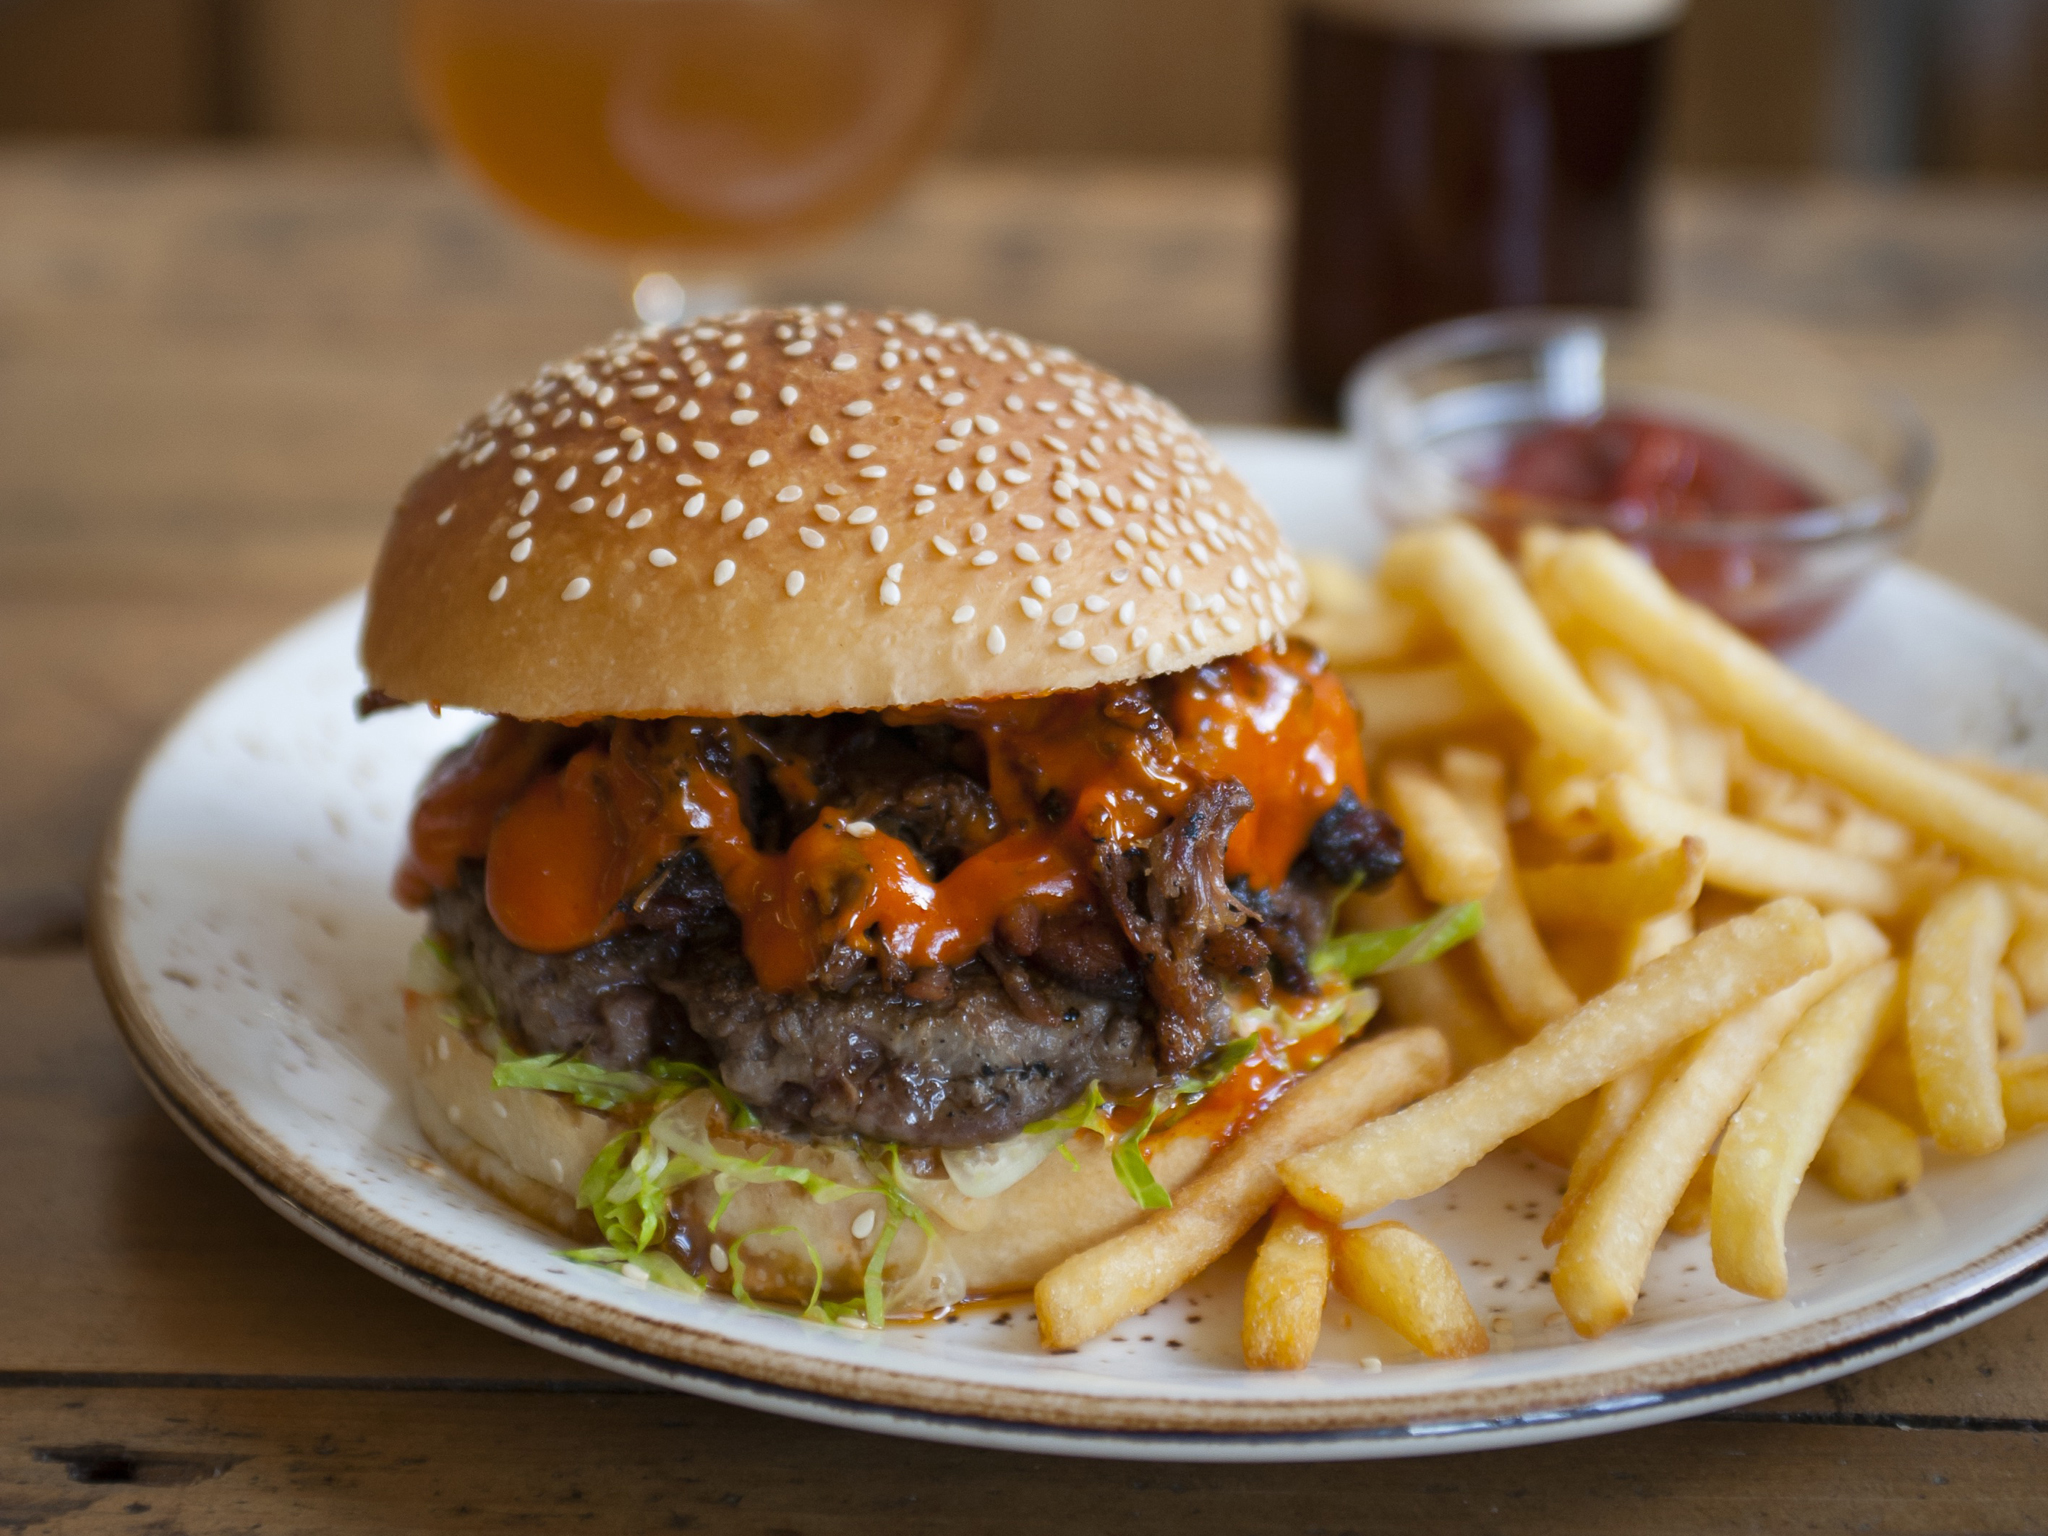 London's best burgers, Smokehouse islington